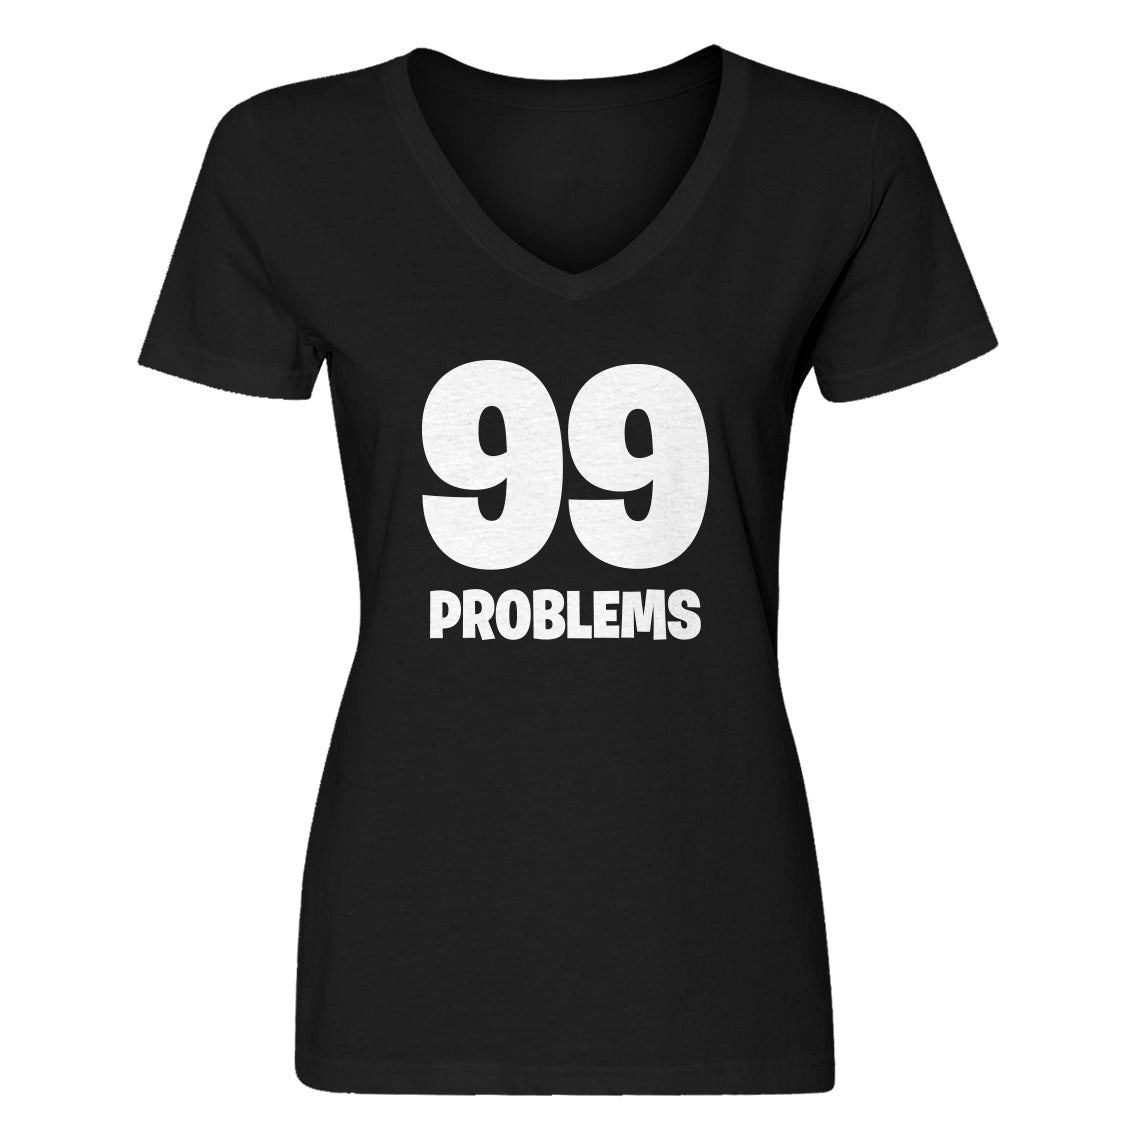 Womens 99 Problems Vneck T-shirt